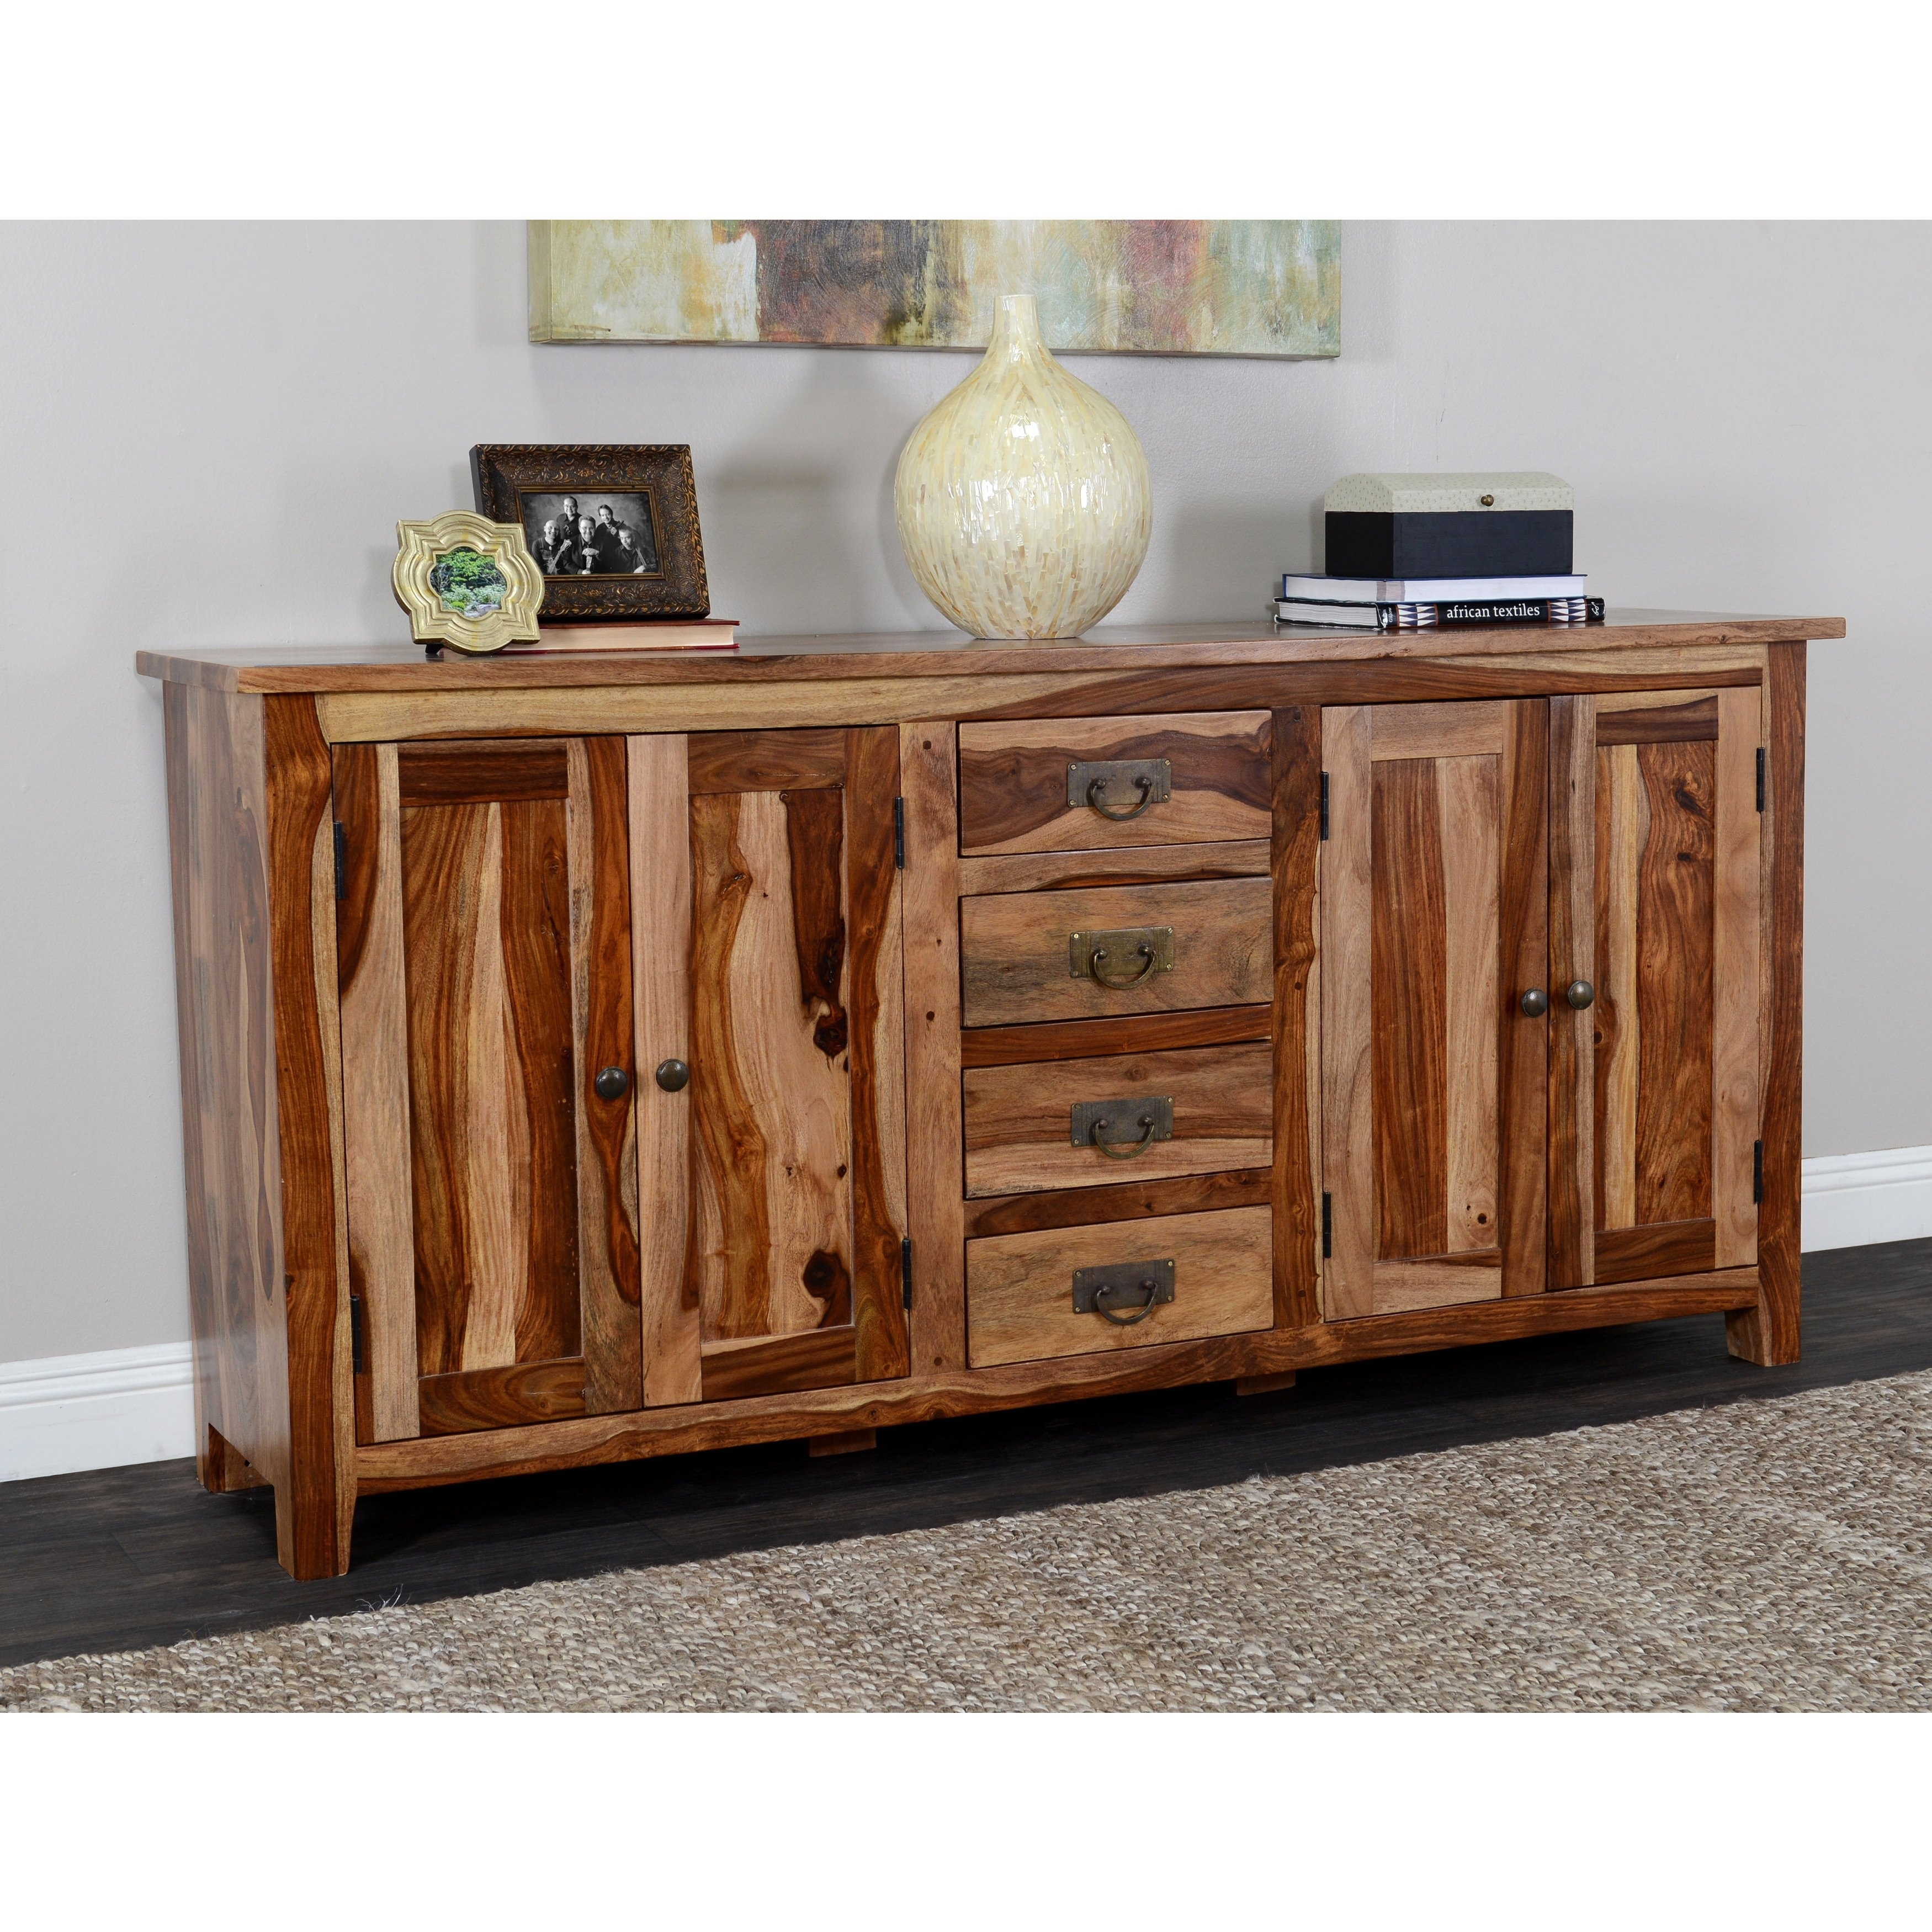 Shop Kosas Home Zabby 4-Drawer 4-Door Sideboard - Free Shipping for Brown Chevron 4-Door Sideboards (Image 24 of 30)